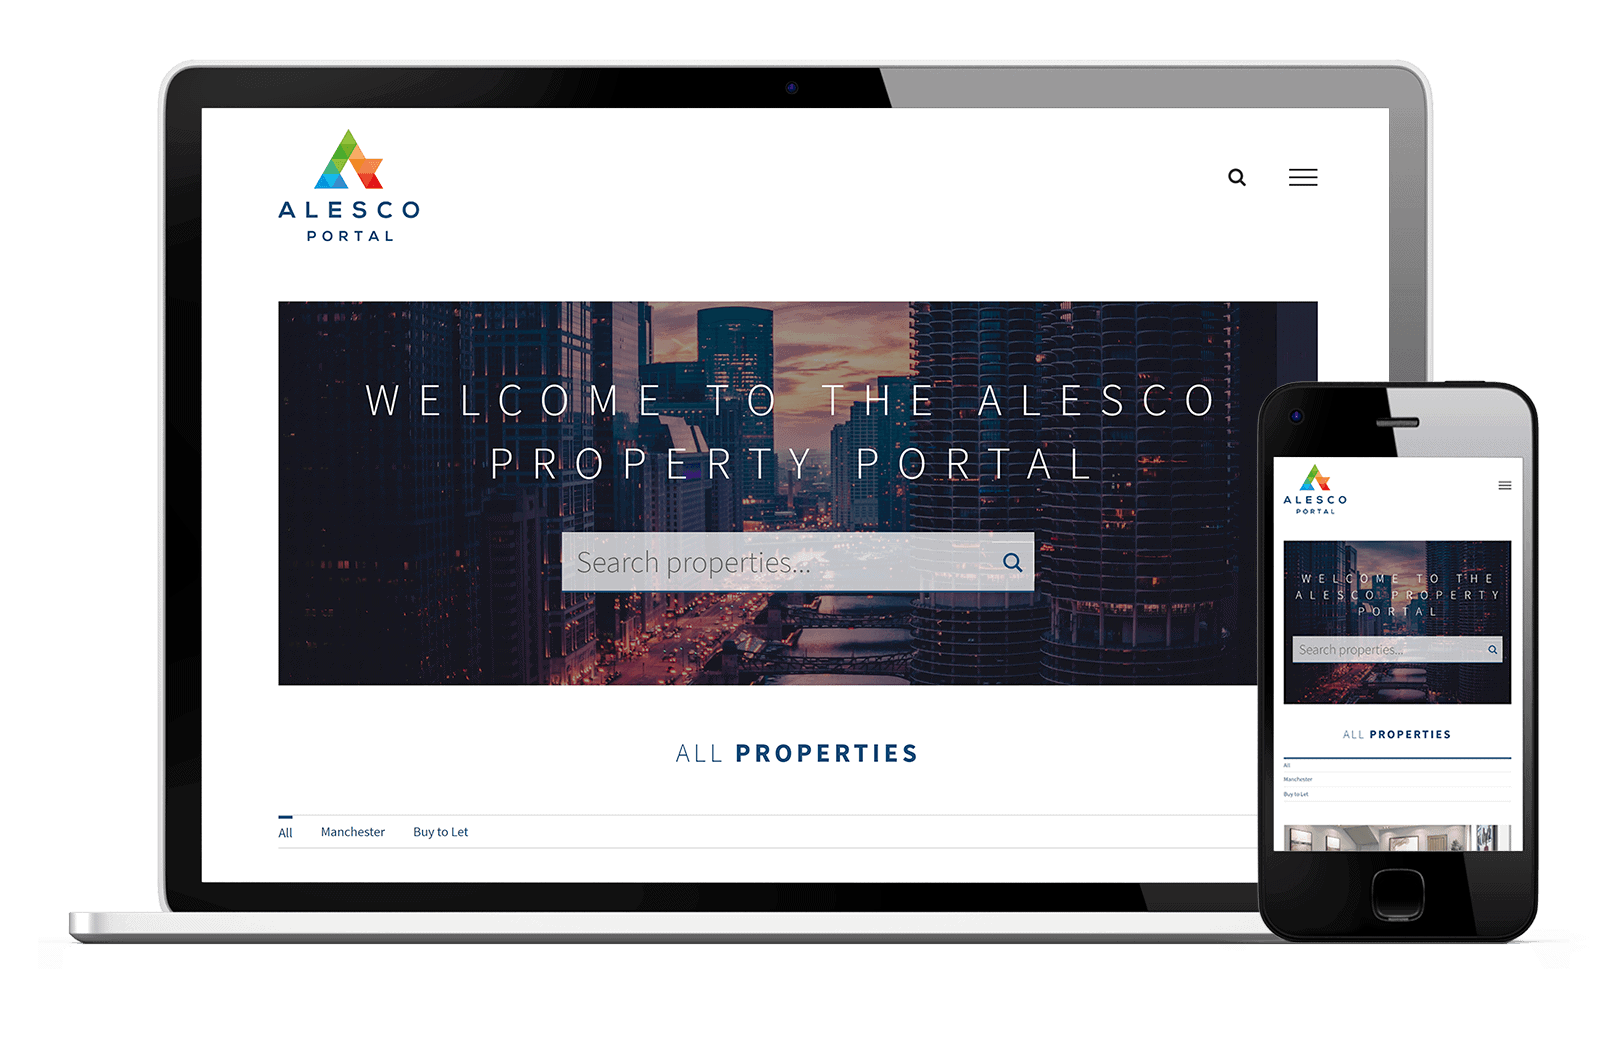 Alesco Property Portal: Laptop and Mobile